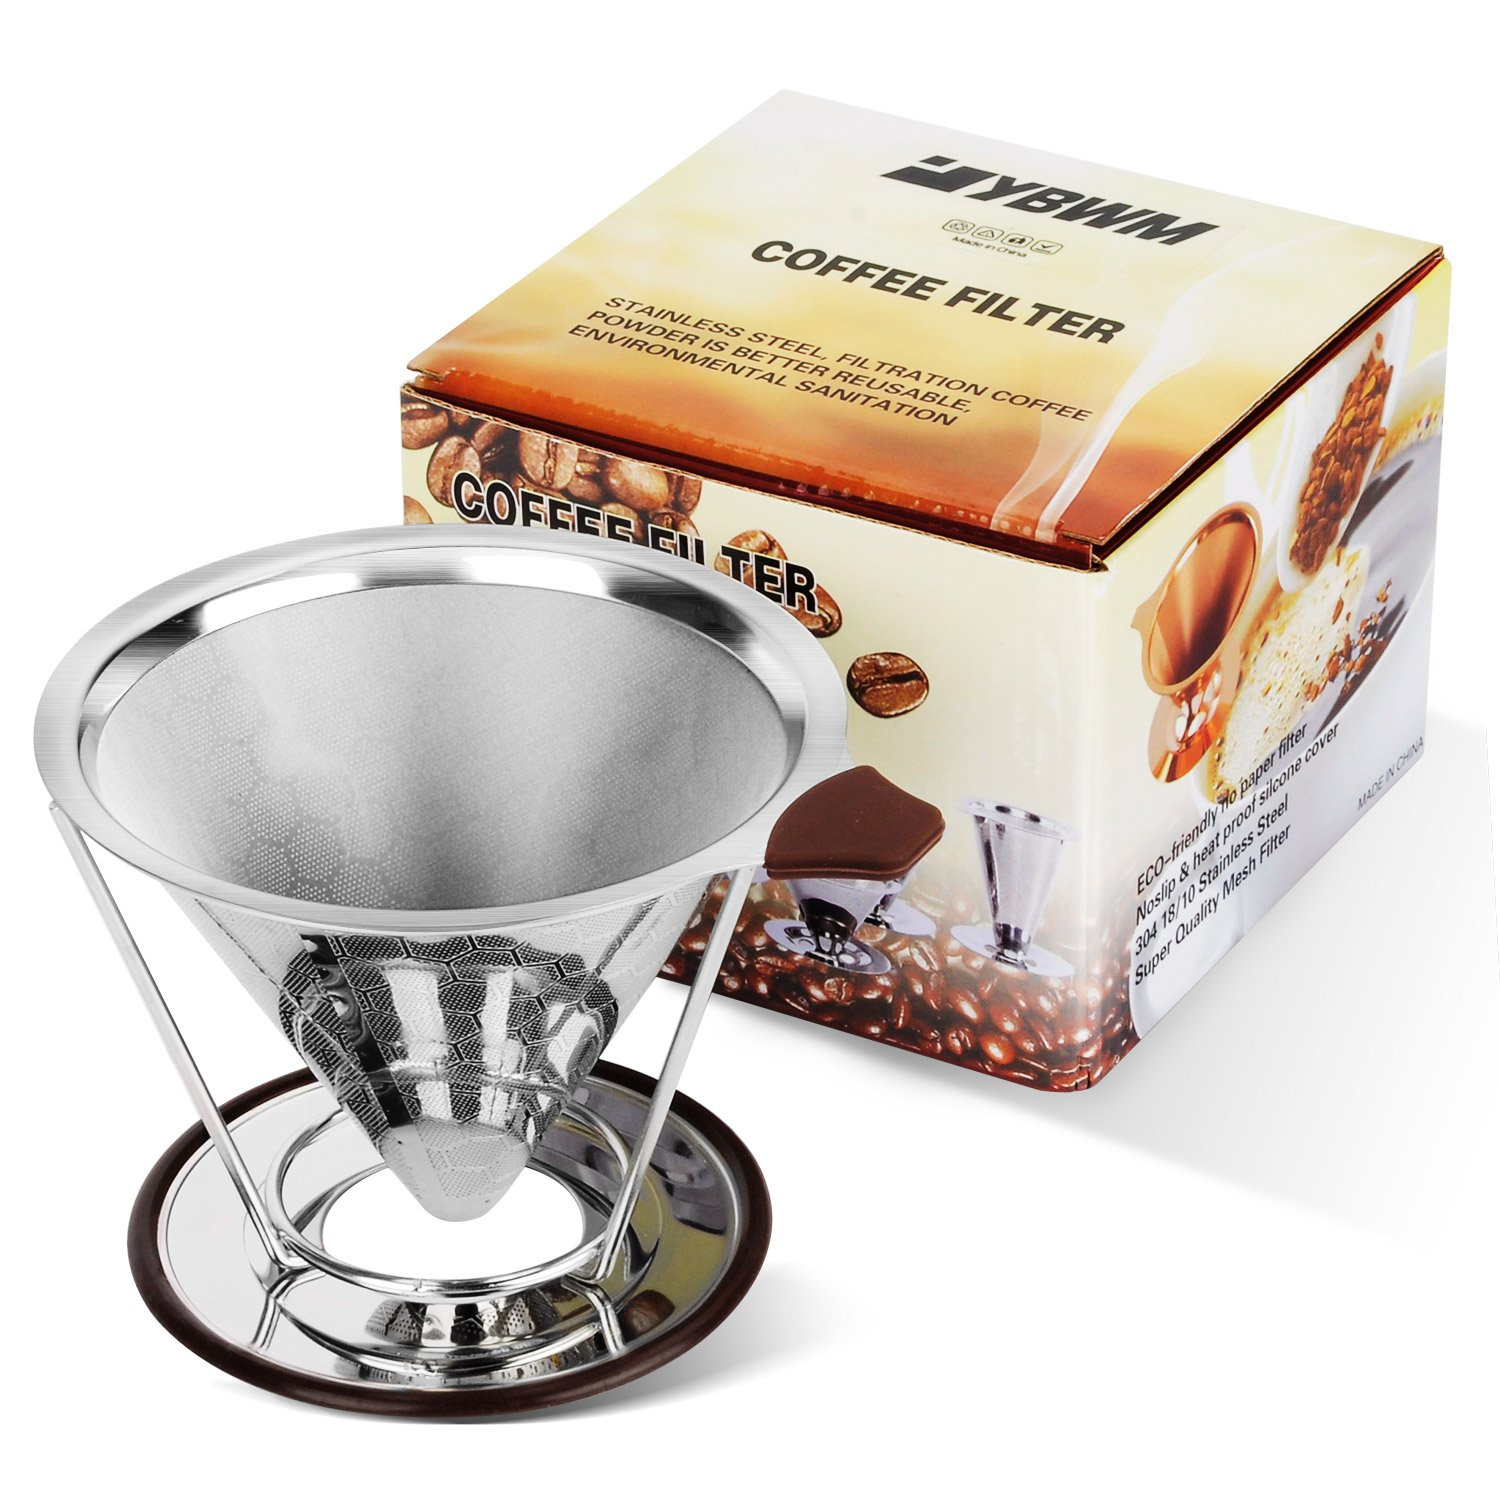 Coffee Filter Stainless Steel YBWM Pour Over Double Metal Mesh Coffee Dripper Cone with Seperate Stand by FDA Certified Food Grade Portable&Paperless Permanent Coffee Maker for 1-4cups